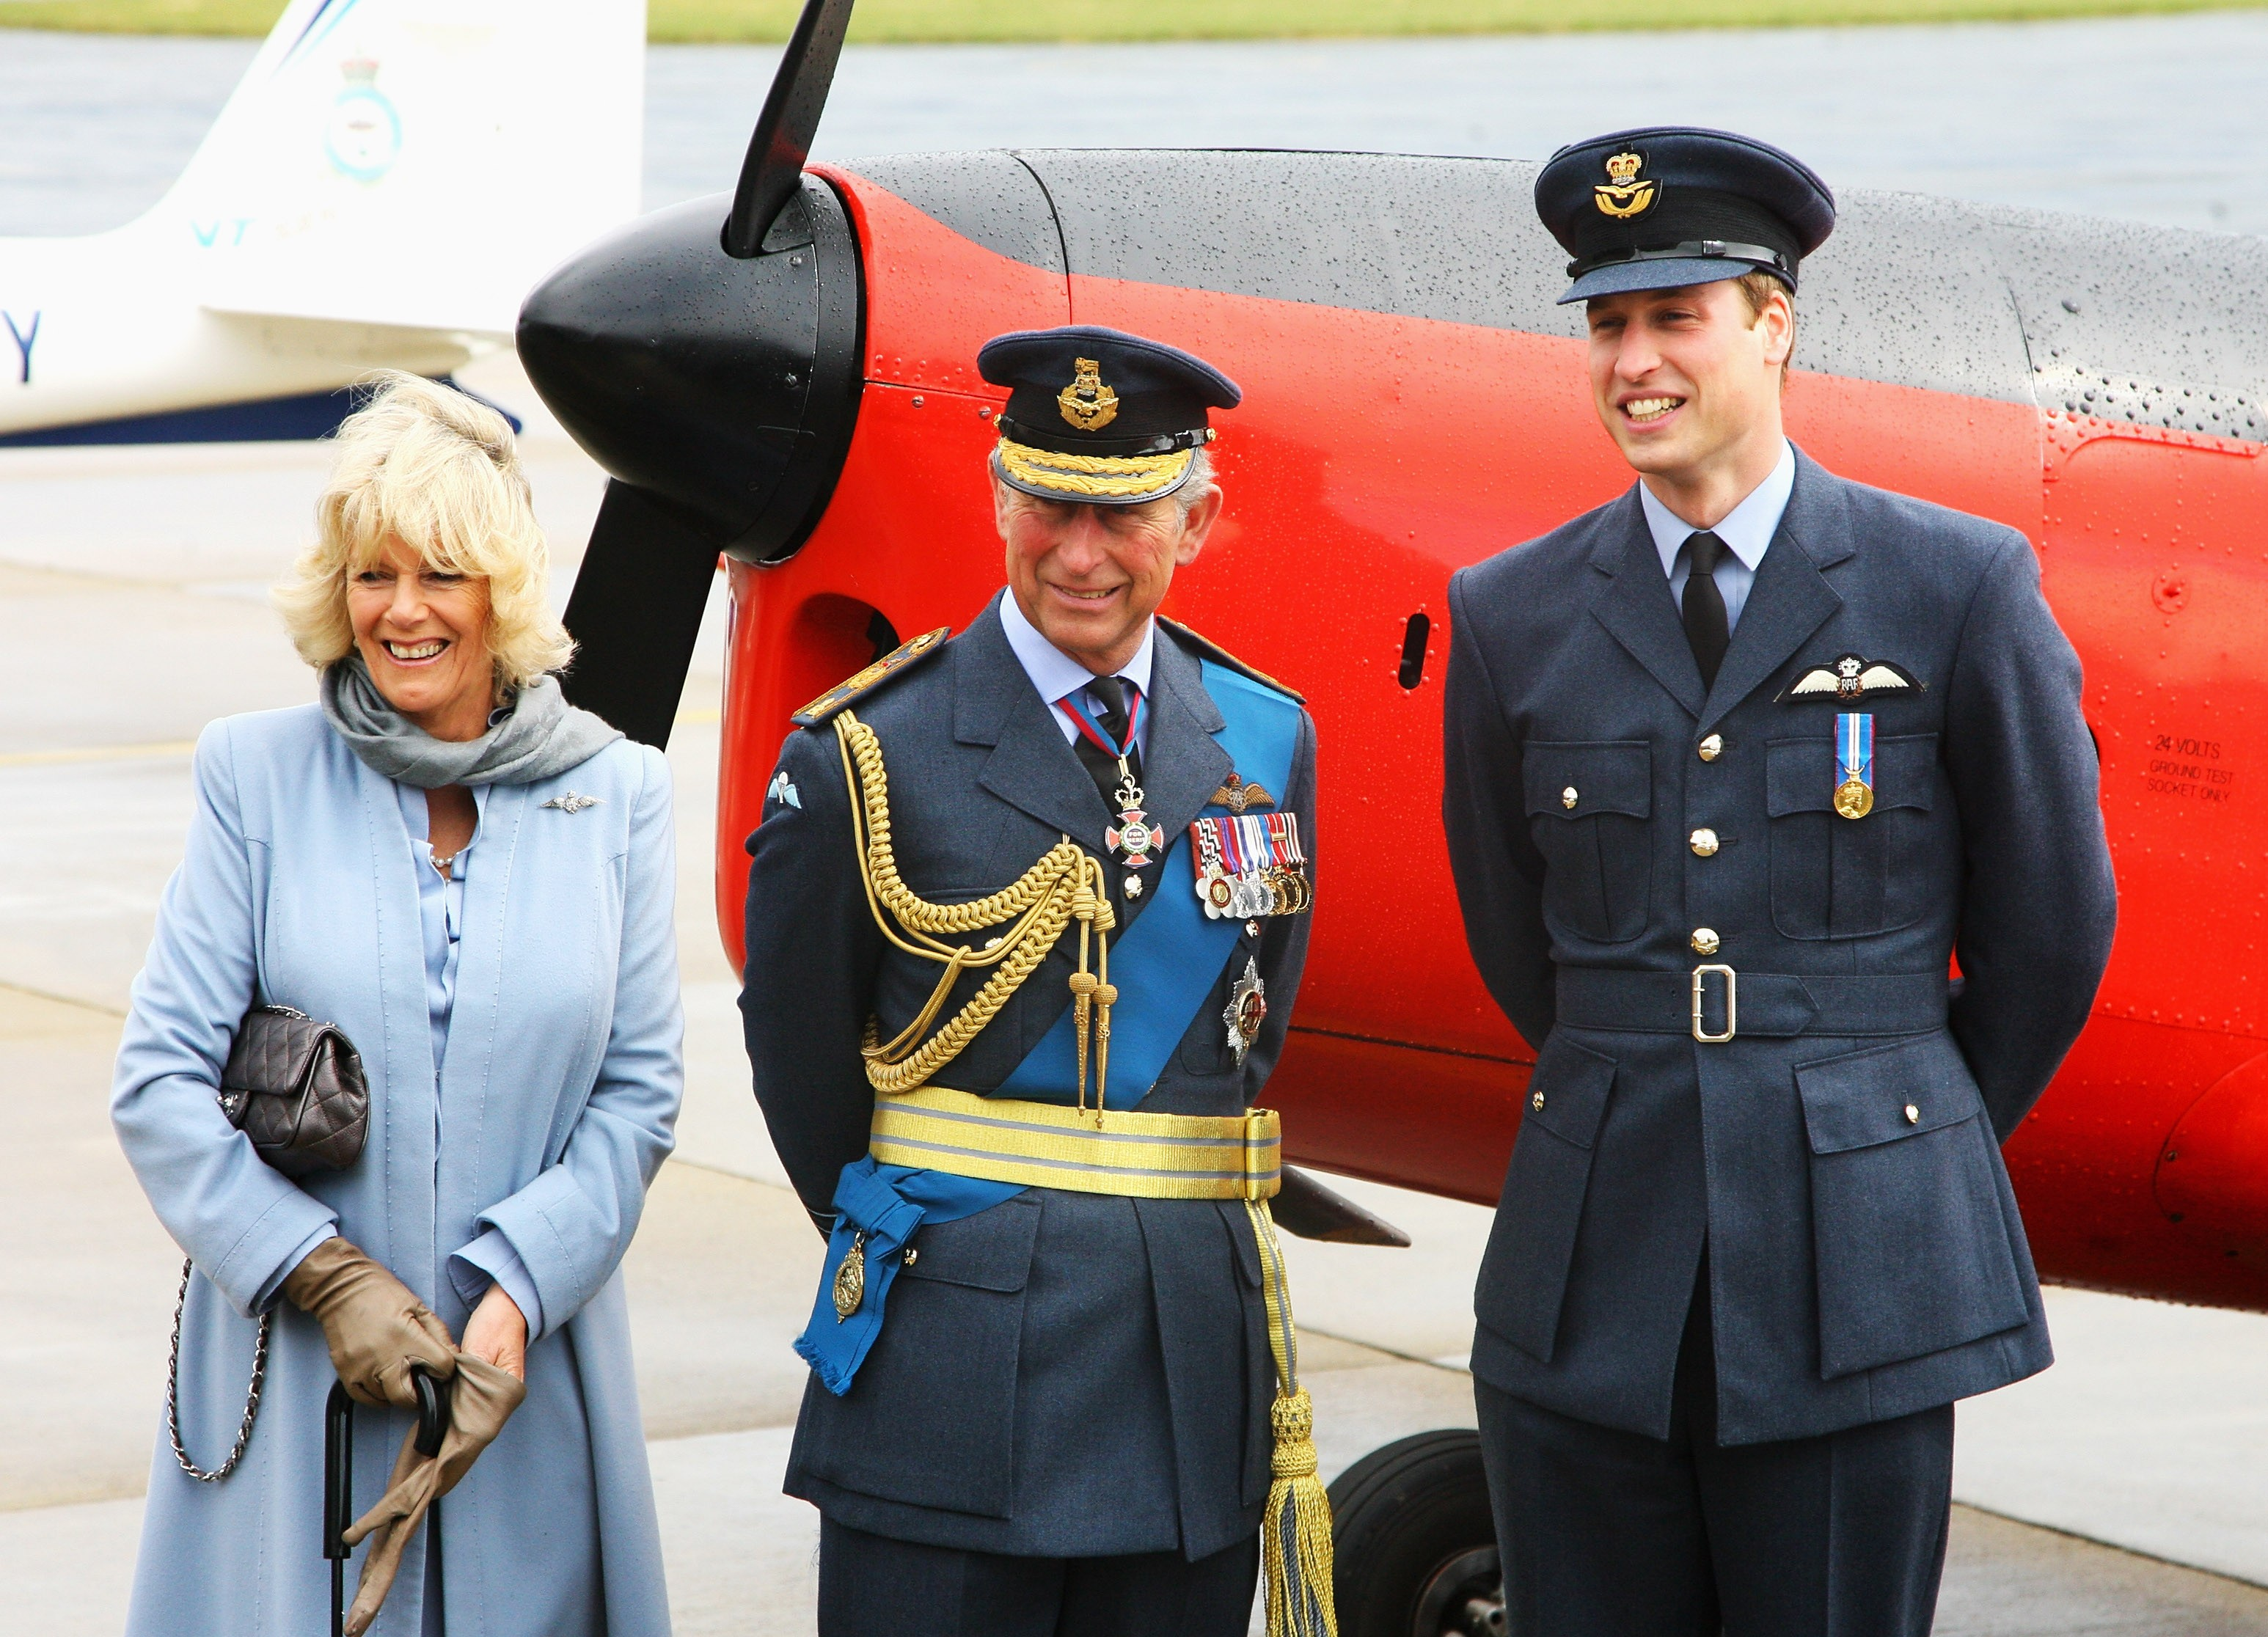 Camilla, Duquesa de Cornwall, Príncipe Charles e Príncipe William  (Foto: Getty Images)